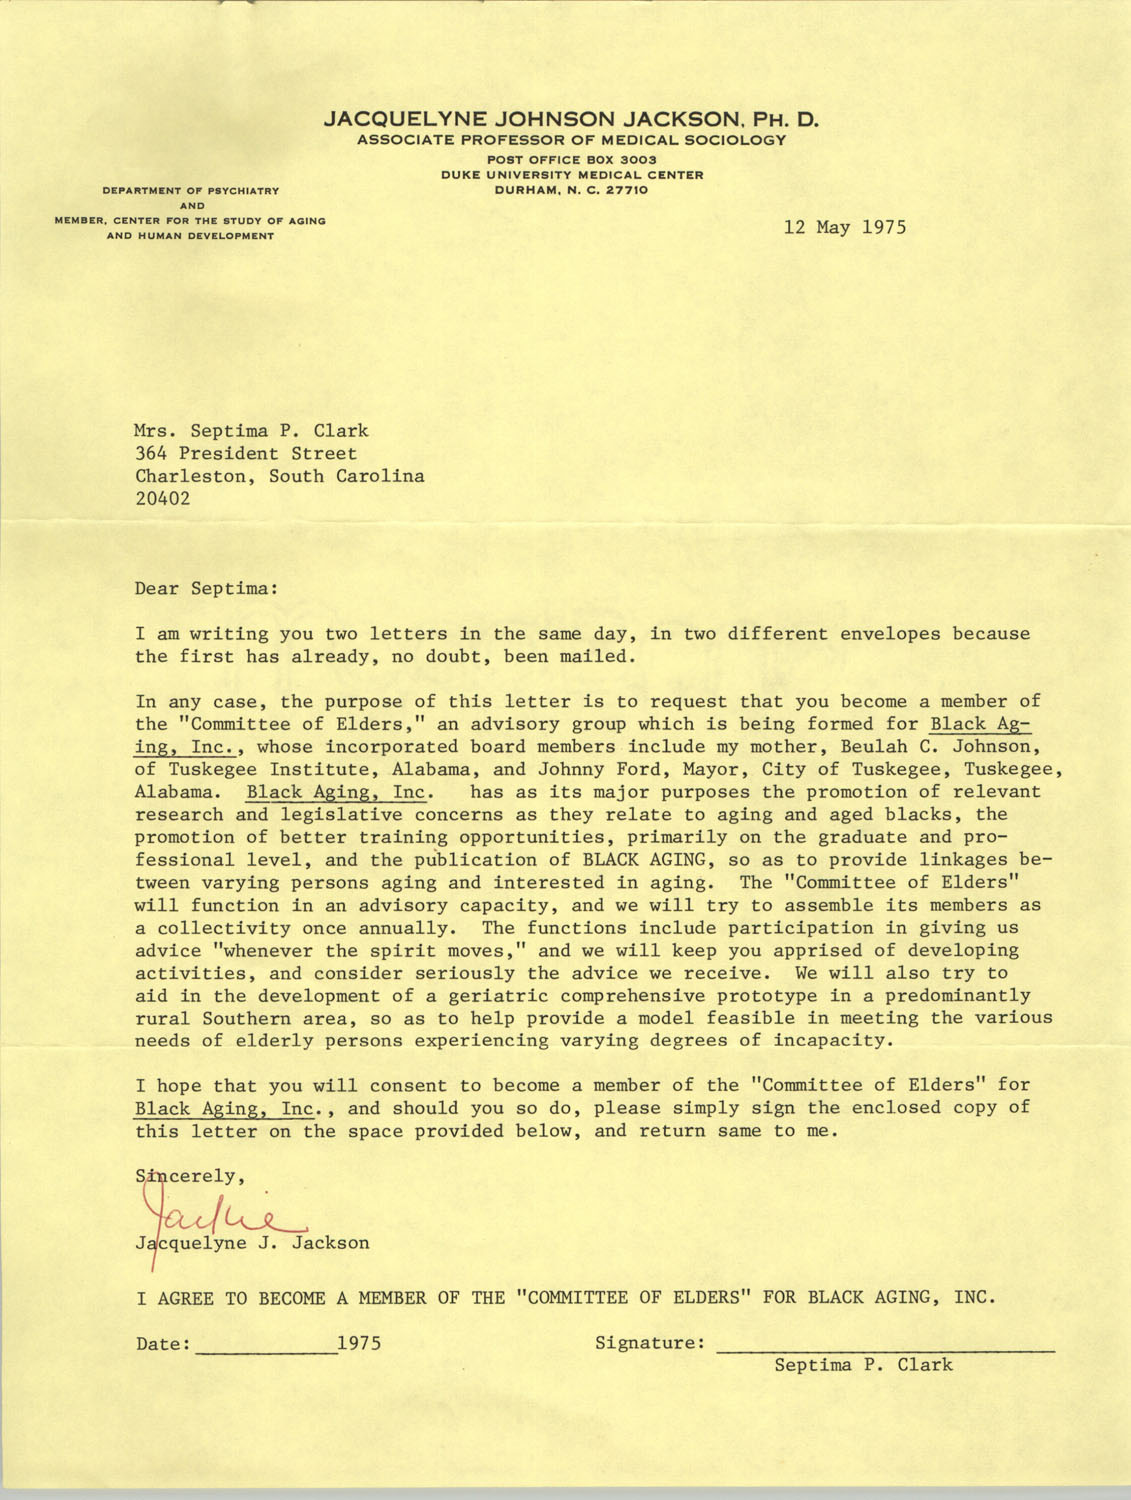 Letter from Jaquelyne J. Jackson to Septima P. Clark, May 12, 1975 (1)